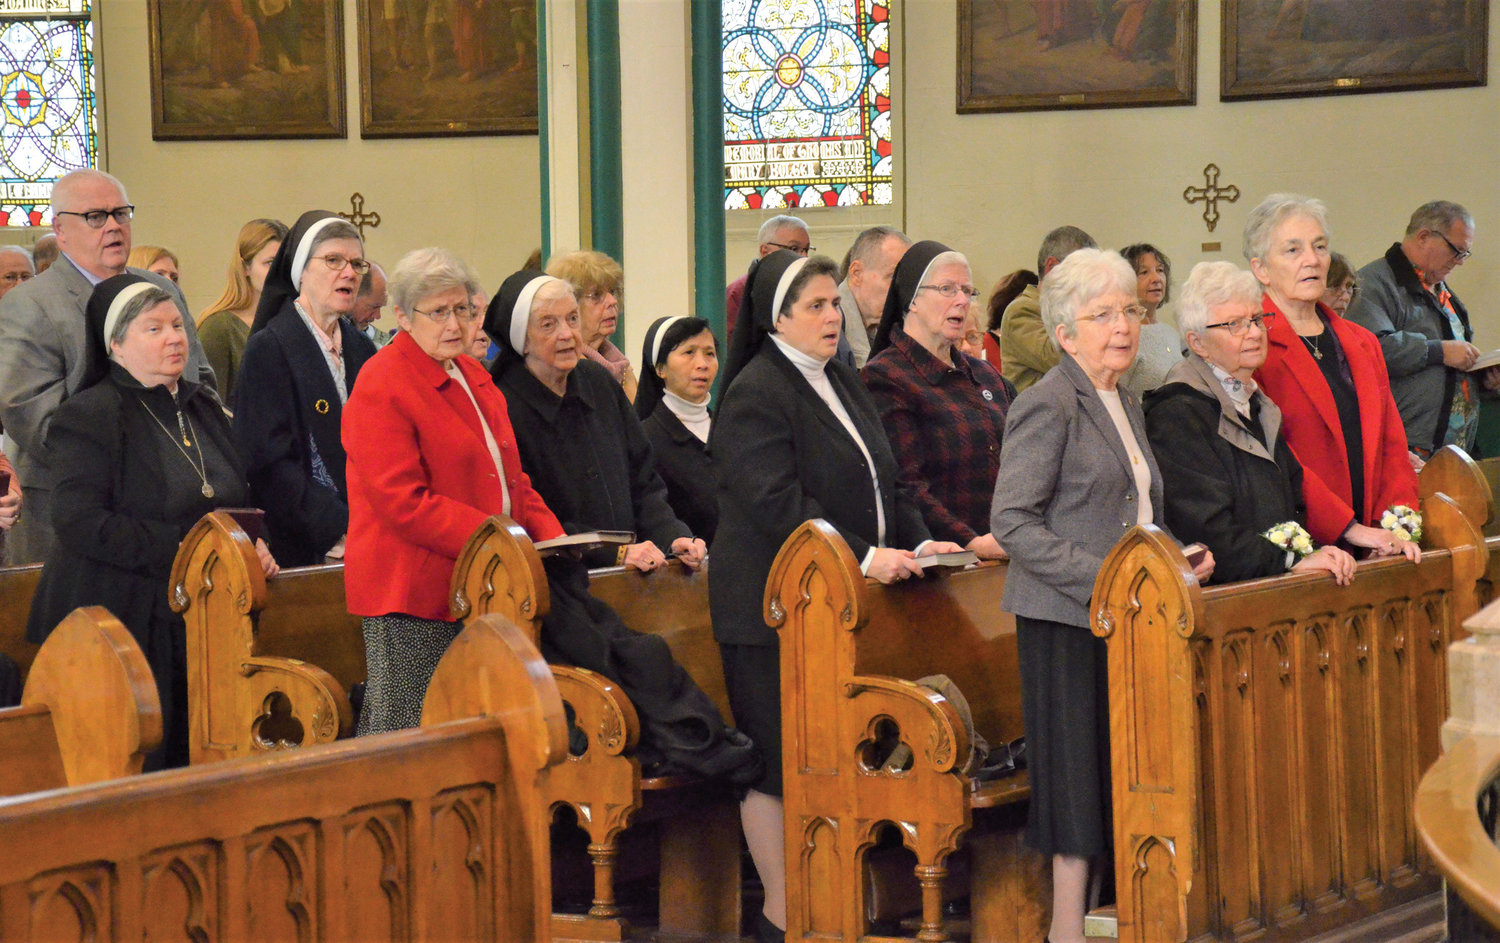 About a dozen Benedictine Sisters of Elizabeth, N.J., attend a Mass at St. Mary's Church in Kingston to show appreciation for the religious order's 118 years of health care service in Kingston.